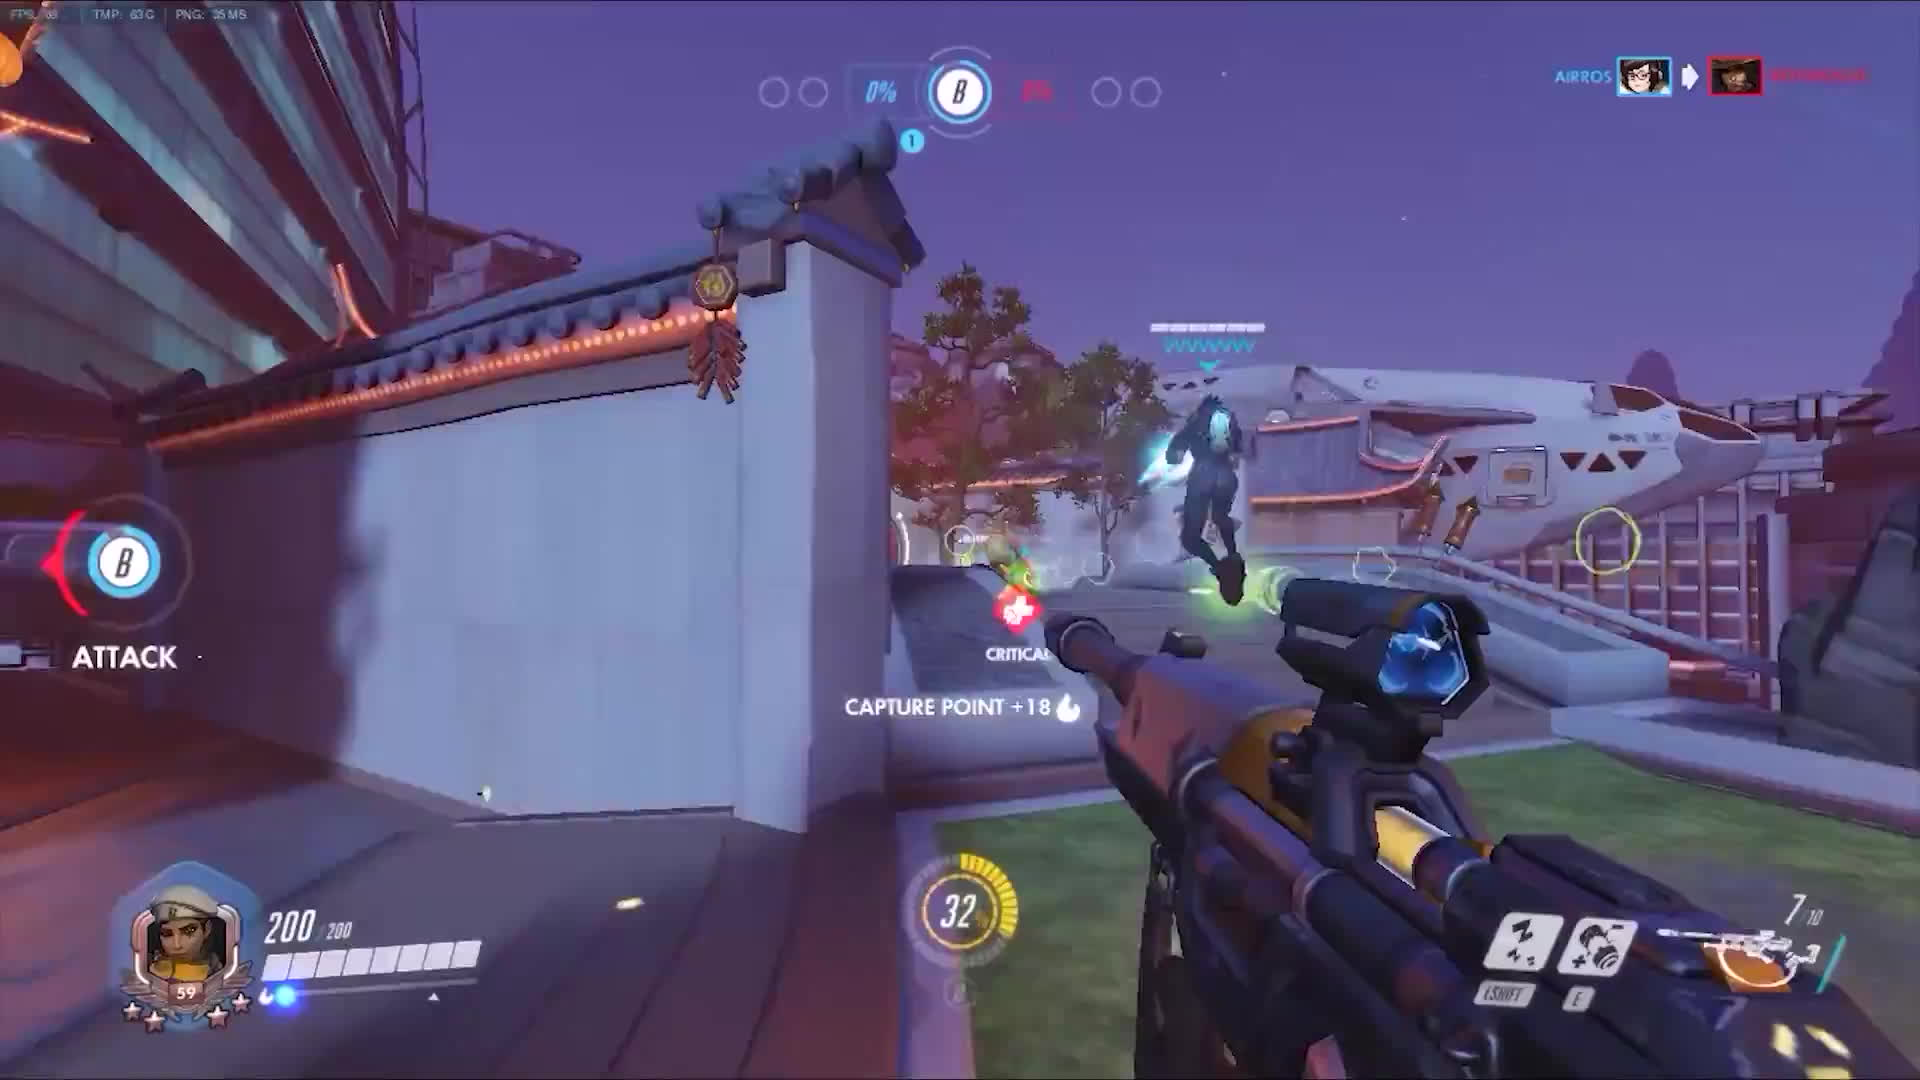 ImagesOfRussia, Overwatch_Memes, Overwatchmemes, Mother Russia gets destroyed by brown people in China GIFs